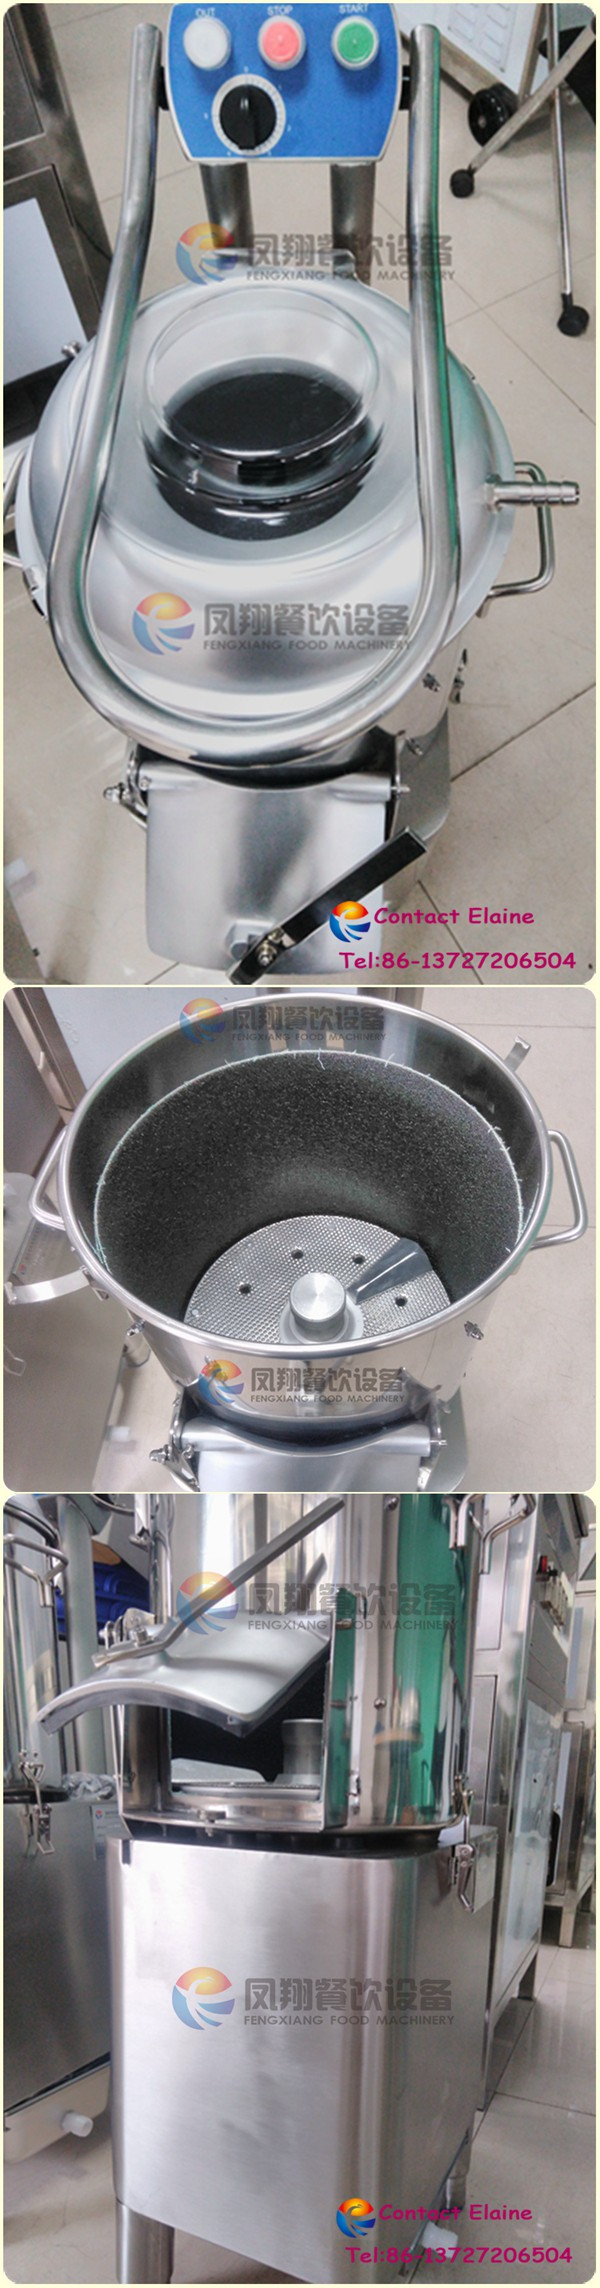 Small Automatic Sweet Potato Washing and Peeling Machine for Sale